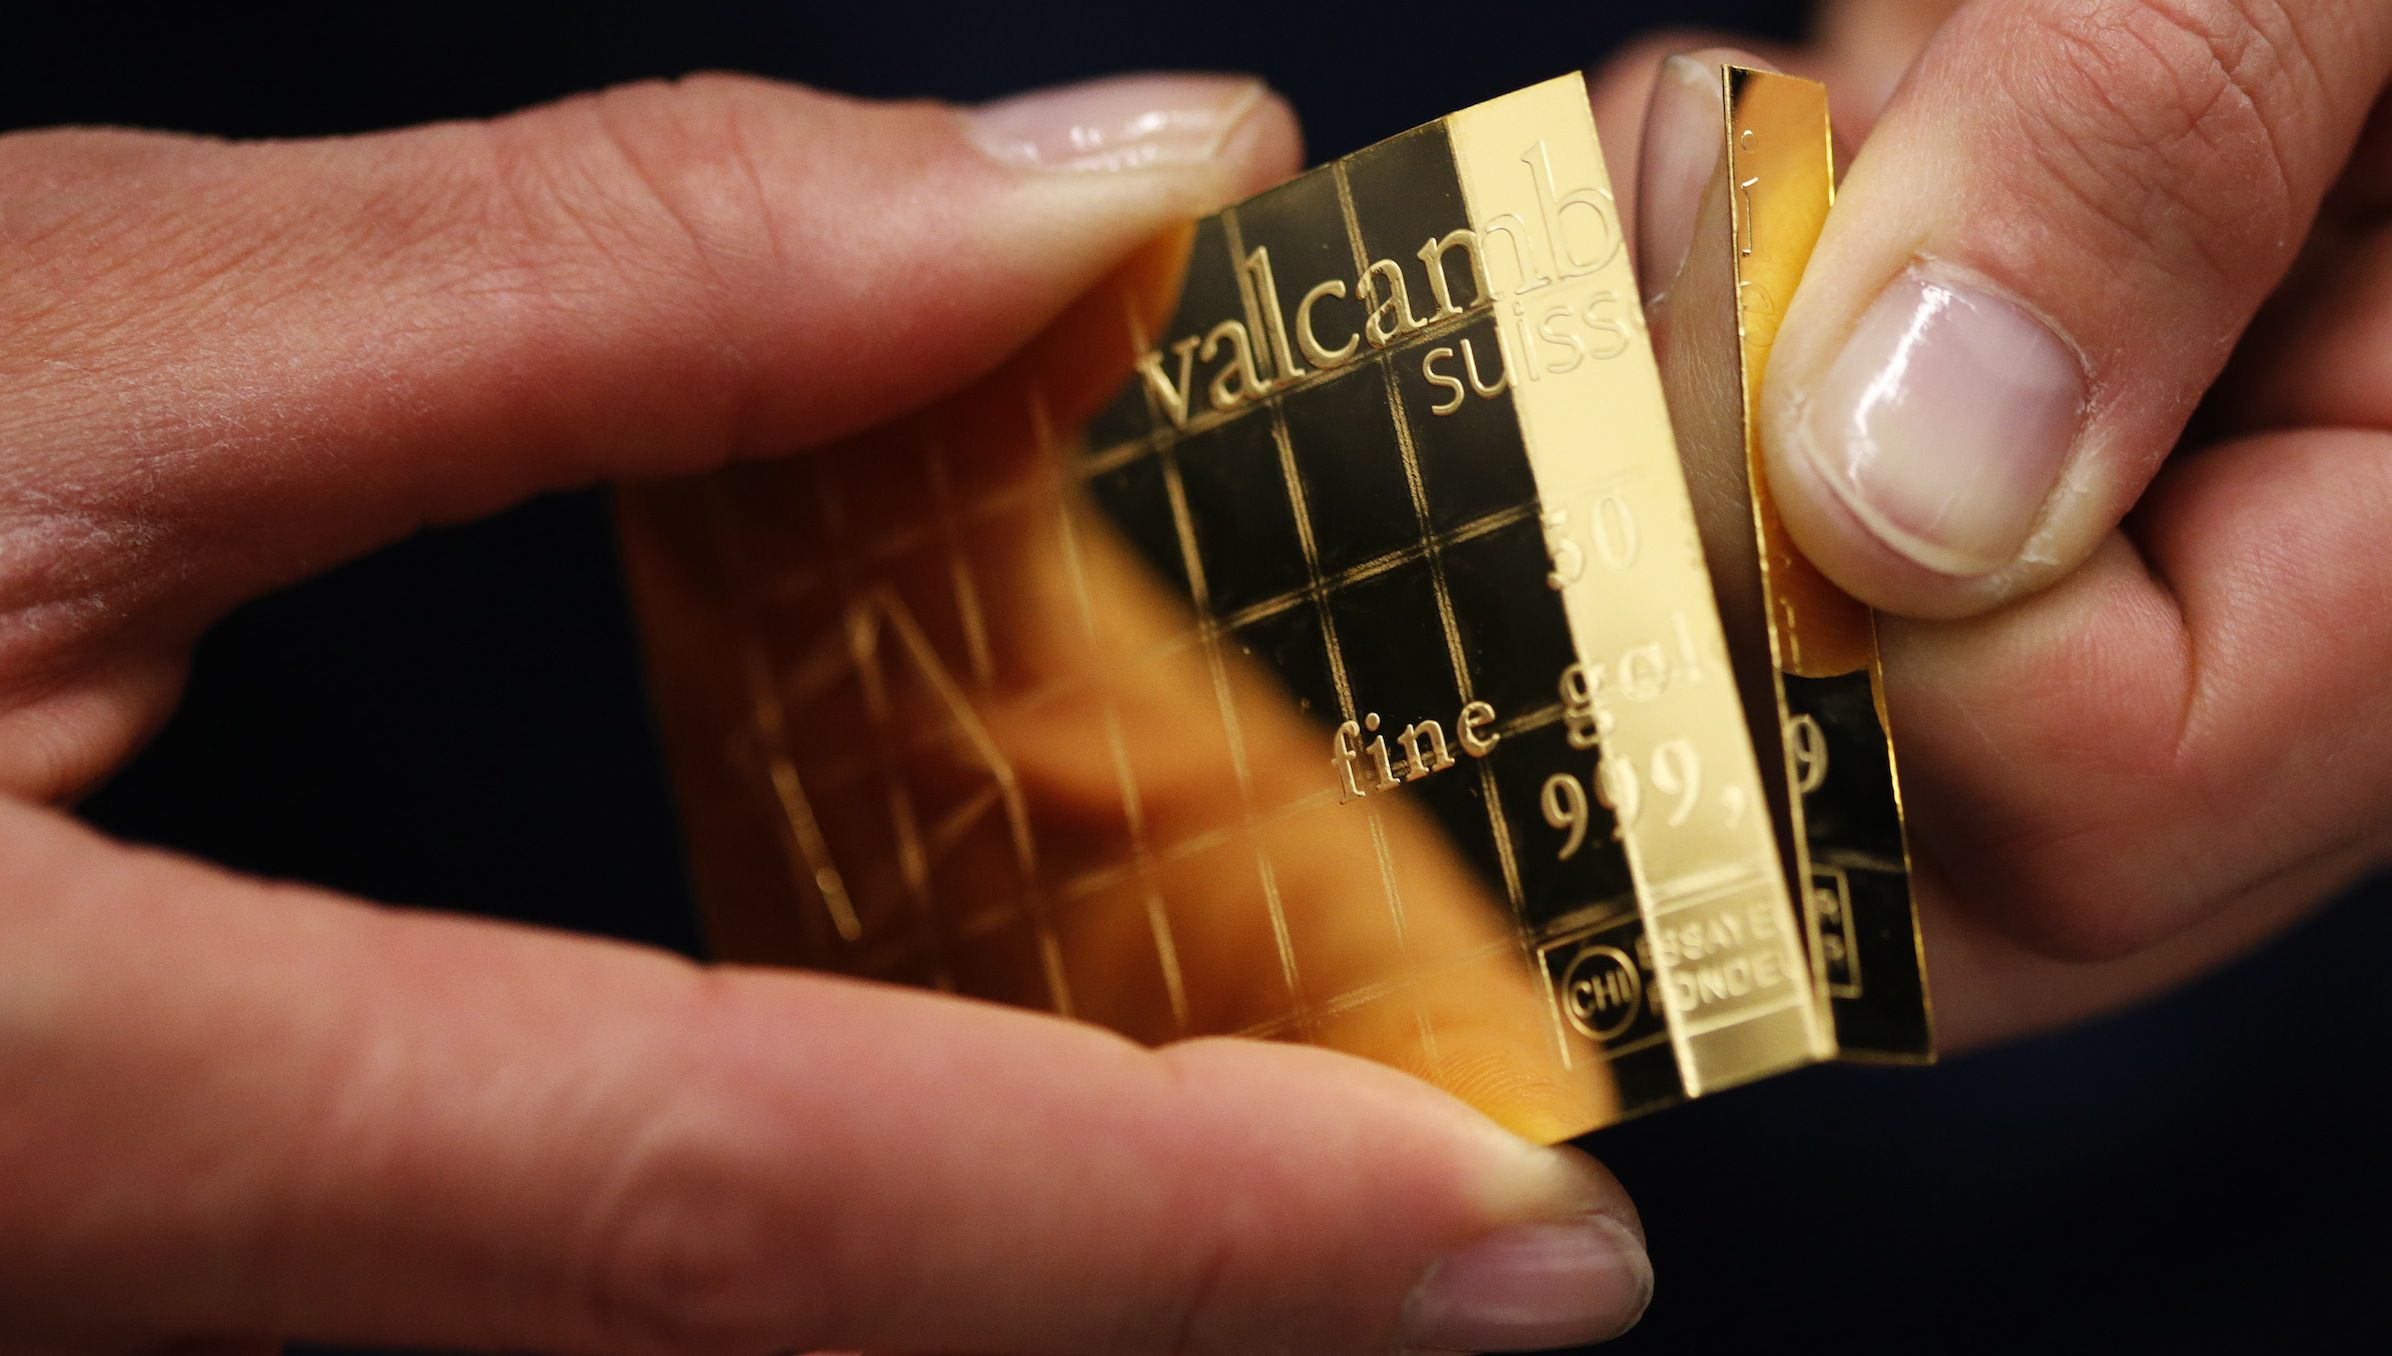 An employee shows dividing a gold Combibar at a plant of gold refiner and bar manufacturer Valcambi SA in the southern Swiss town of Balerna December 20, 2012. The divisible gold combibar has a purity of 99.9 percent, weighs 50 grams and also has predetermined breaking points which allow it to be easily separated without any loss of material into 1 gram pieces. Picture taken December 20, 2012. To match story SWISS-GOLD/ REUTERS/Michael Buholzer (SWITZERLAND - Tags: BUSINESS) - RTR3BT5P